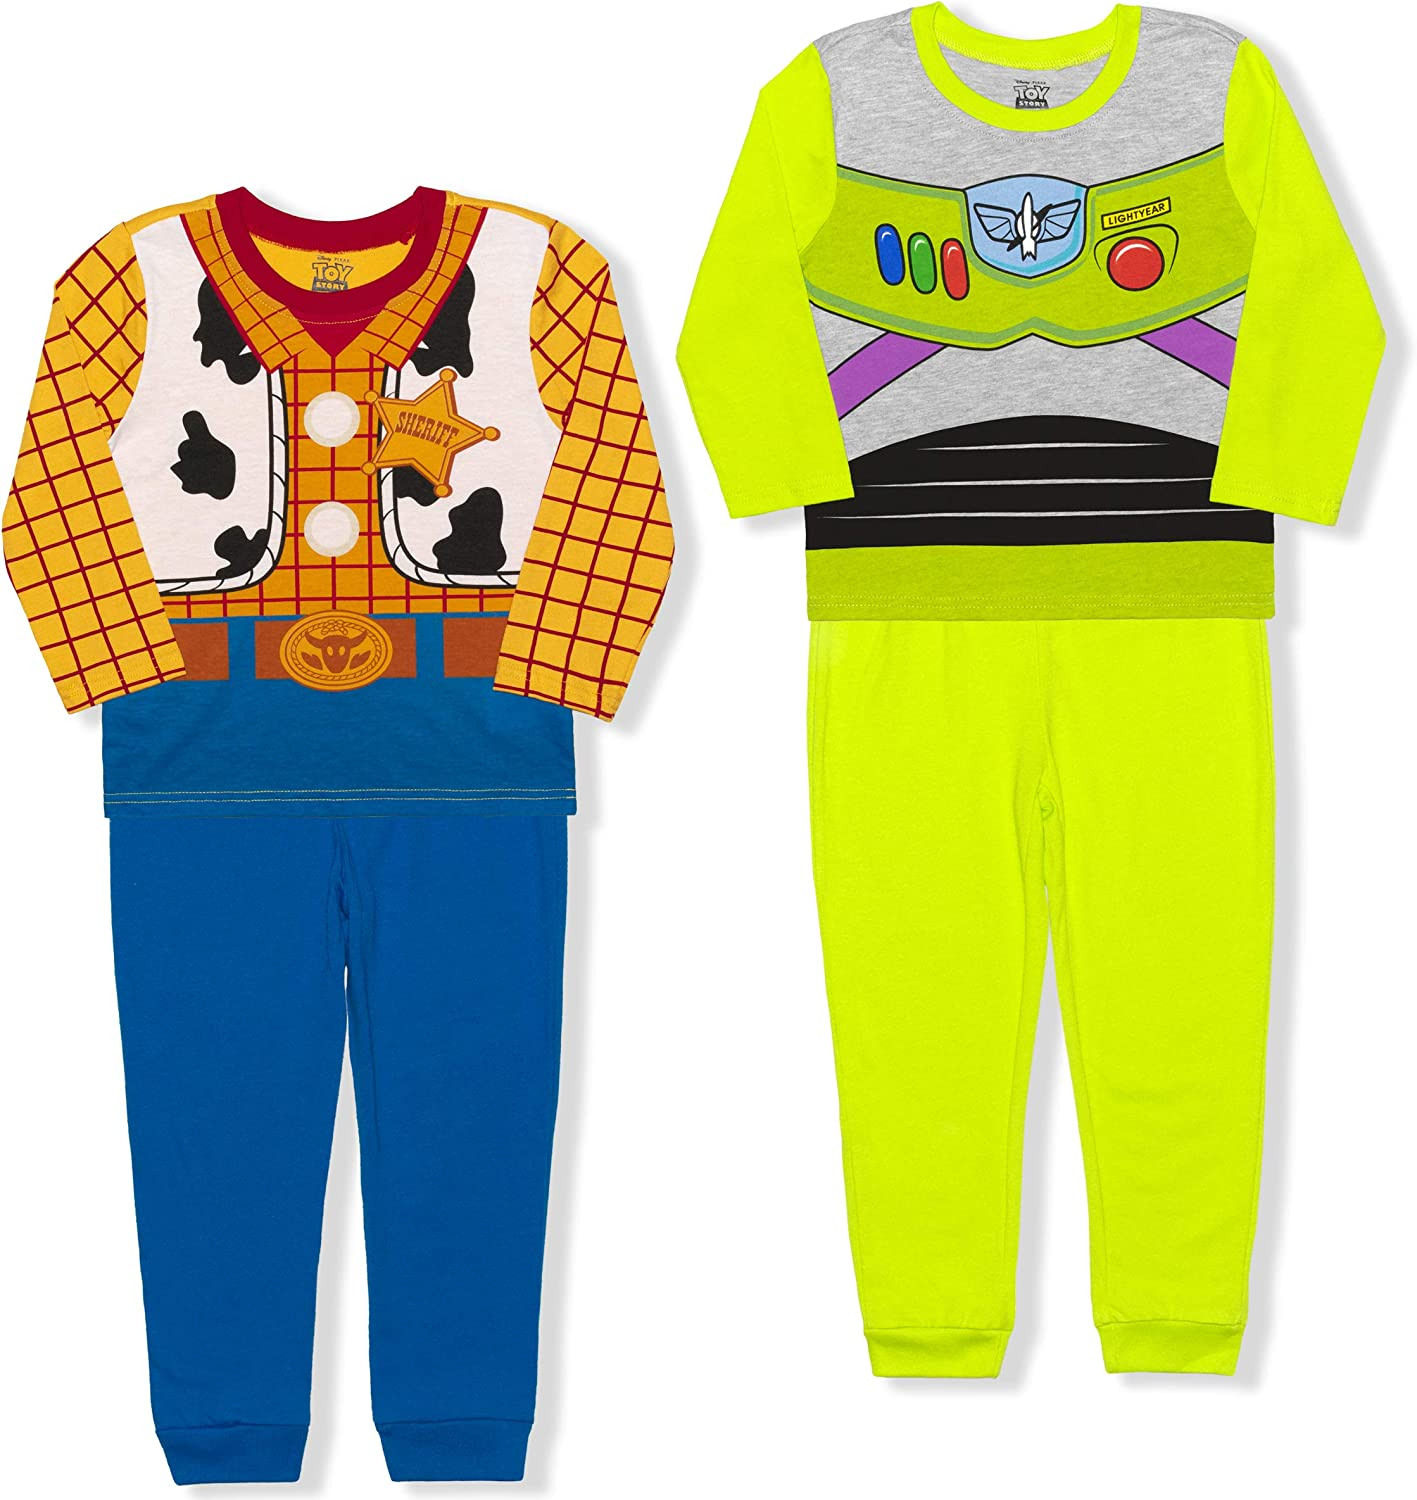 Disney Toy Story Boy's4-PieceWoody and Buzz Lightyear Pant Sets